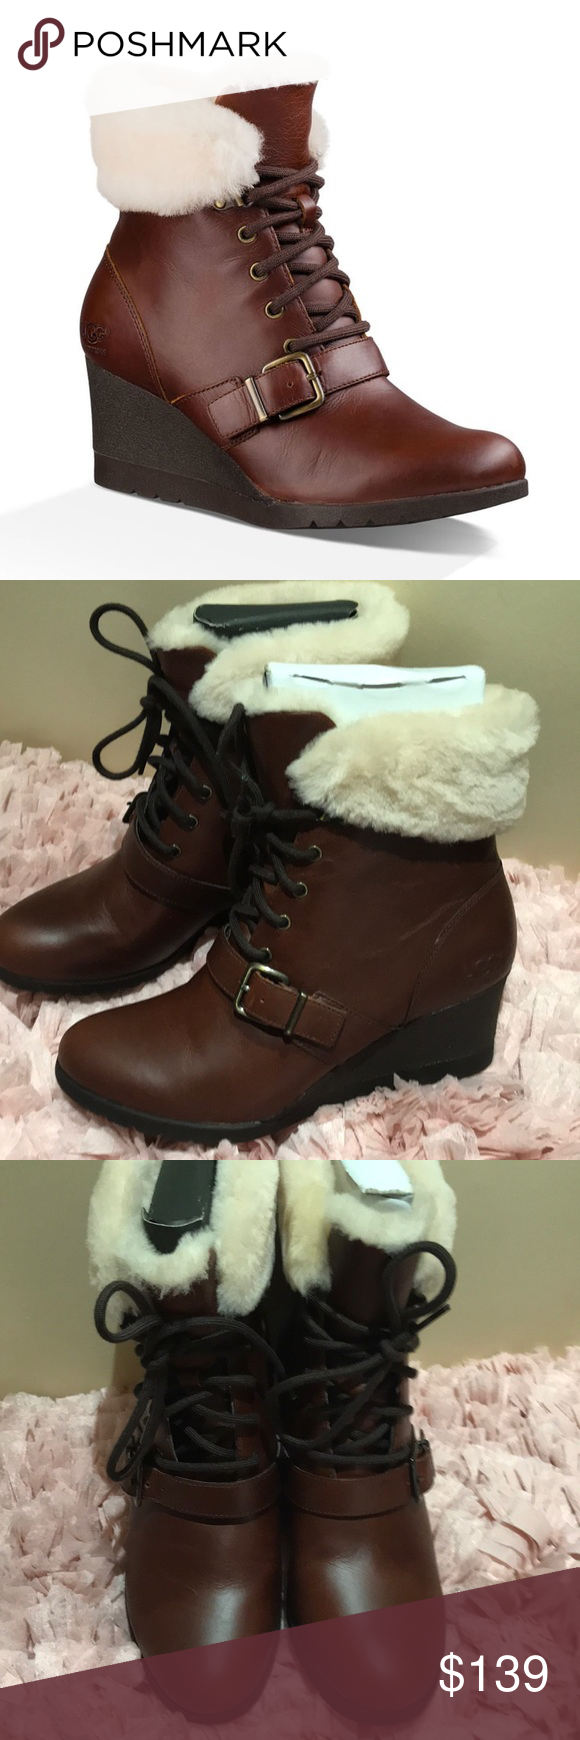 4c85832885c Ugg Janney leather fur wedge lace up boots nwt Beautiful leather ...